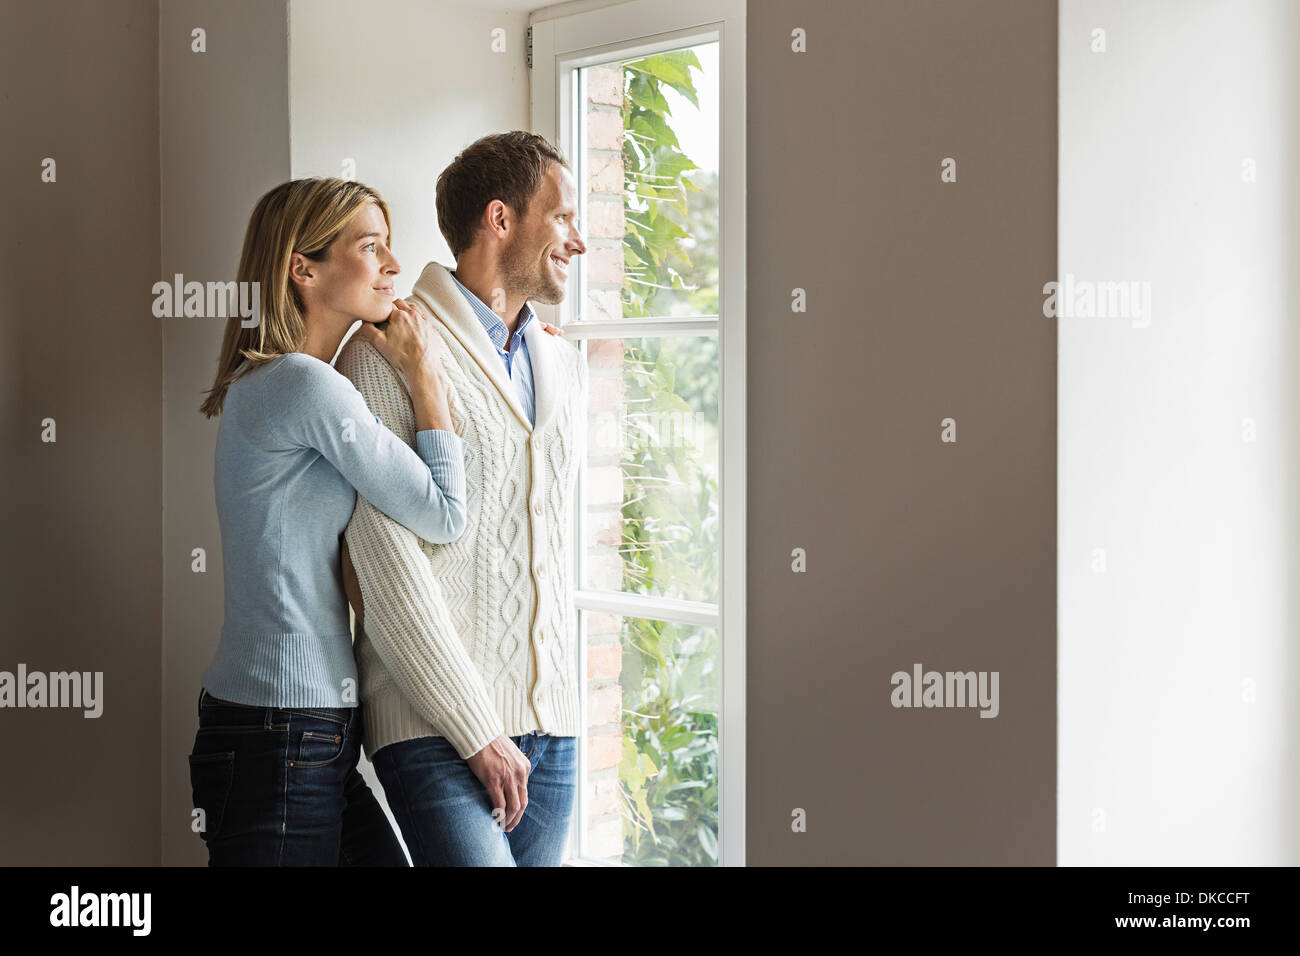 Portrait of mid adult couple looking out of window - Stock Image